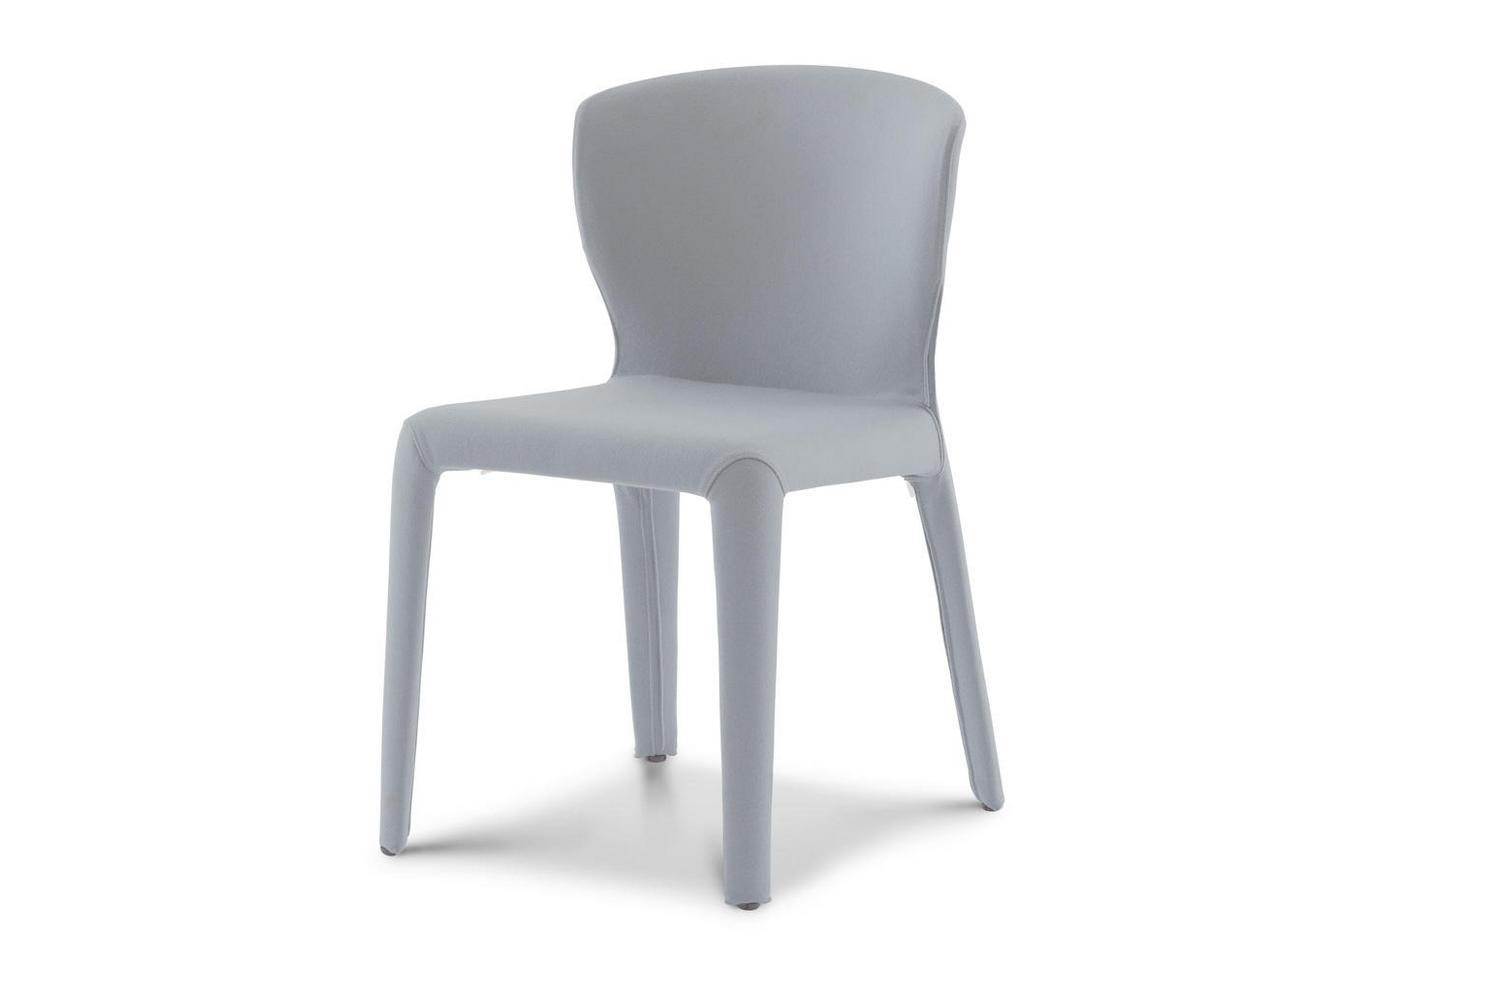 369 Hola Chair by Hannes Wettstein for Cassina